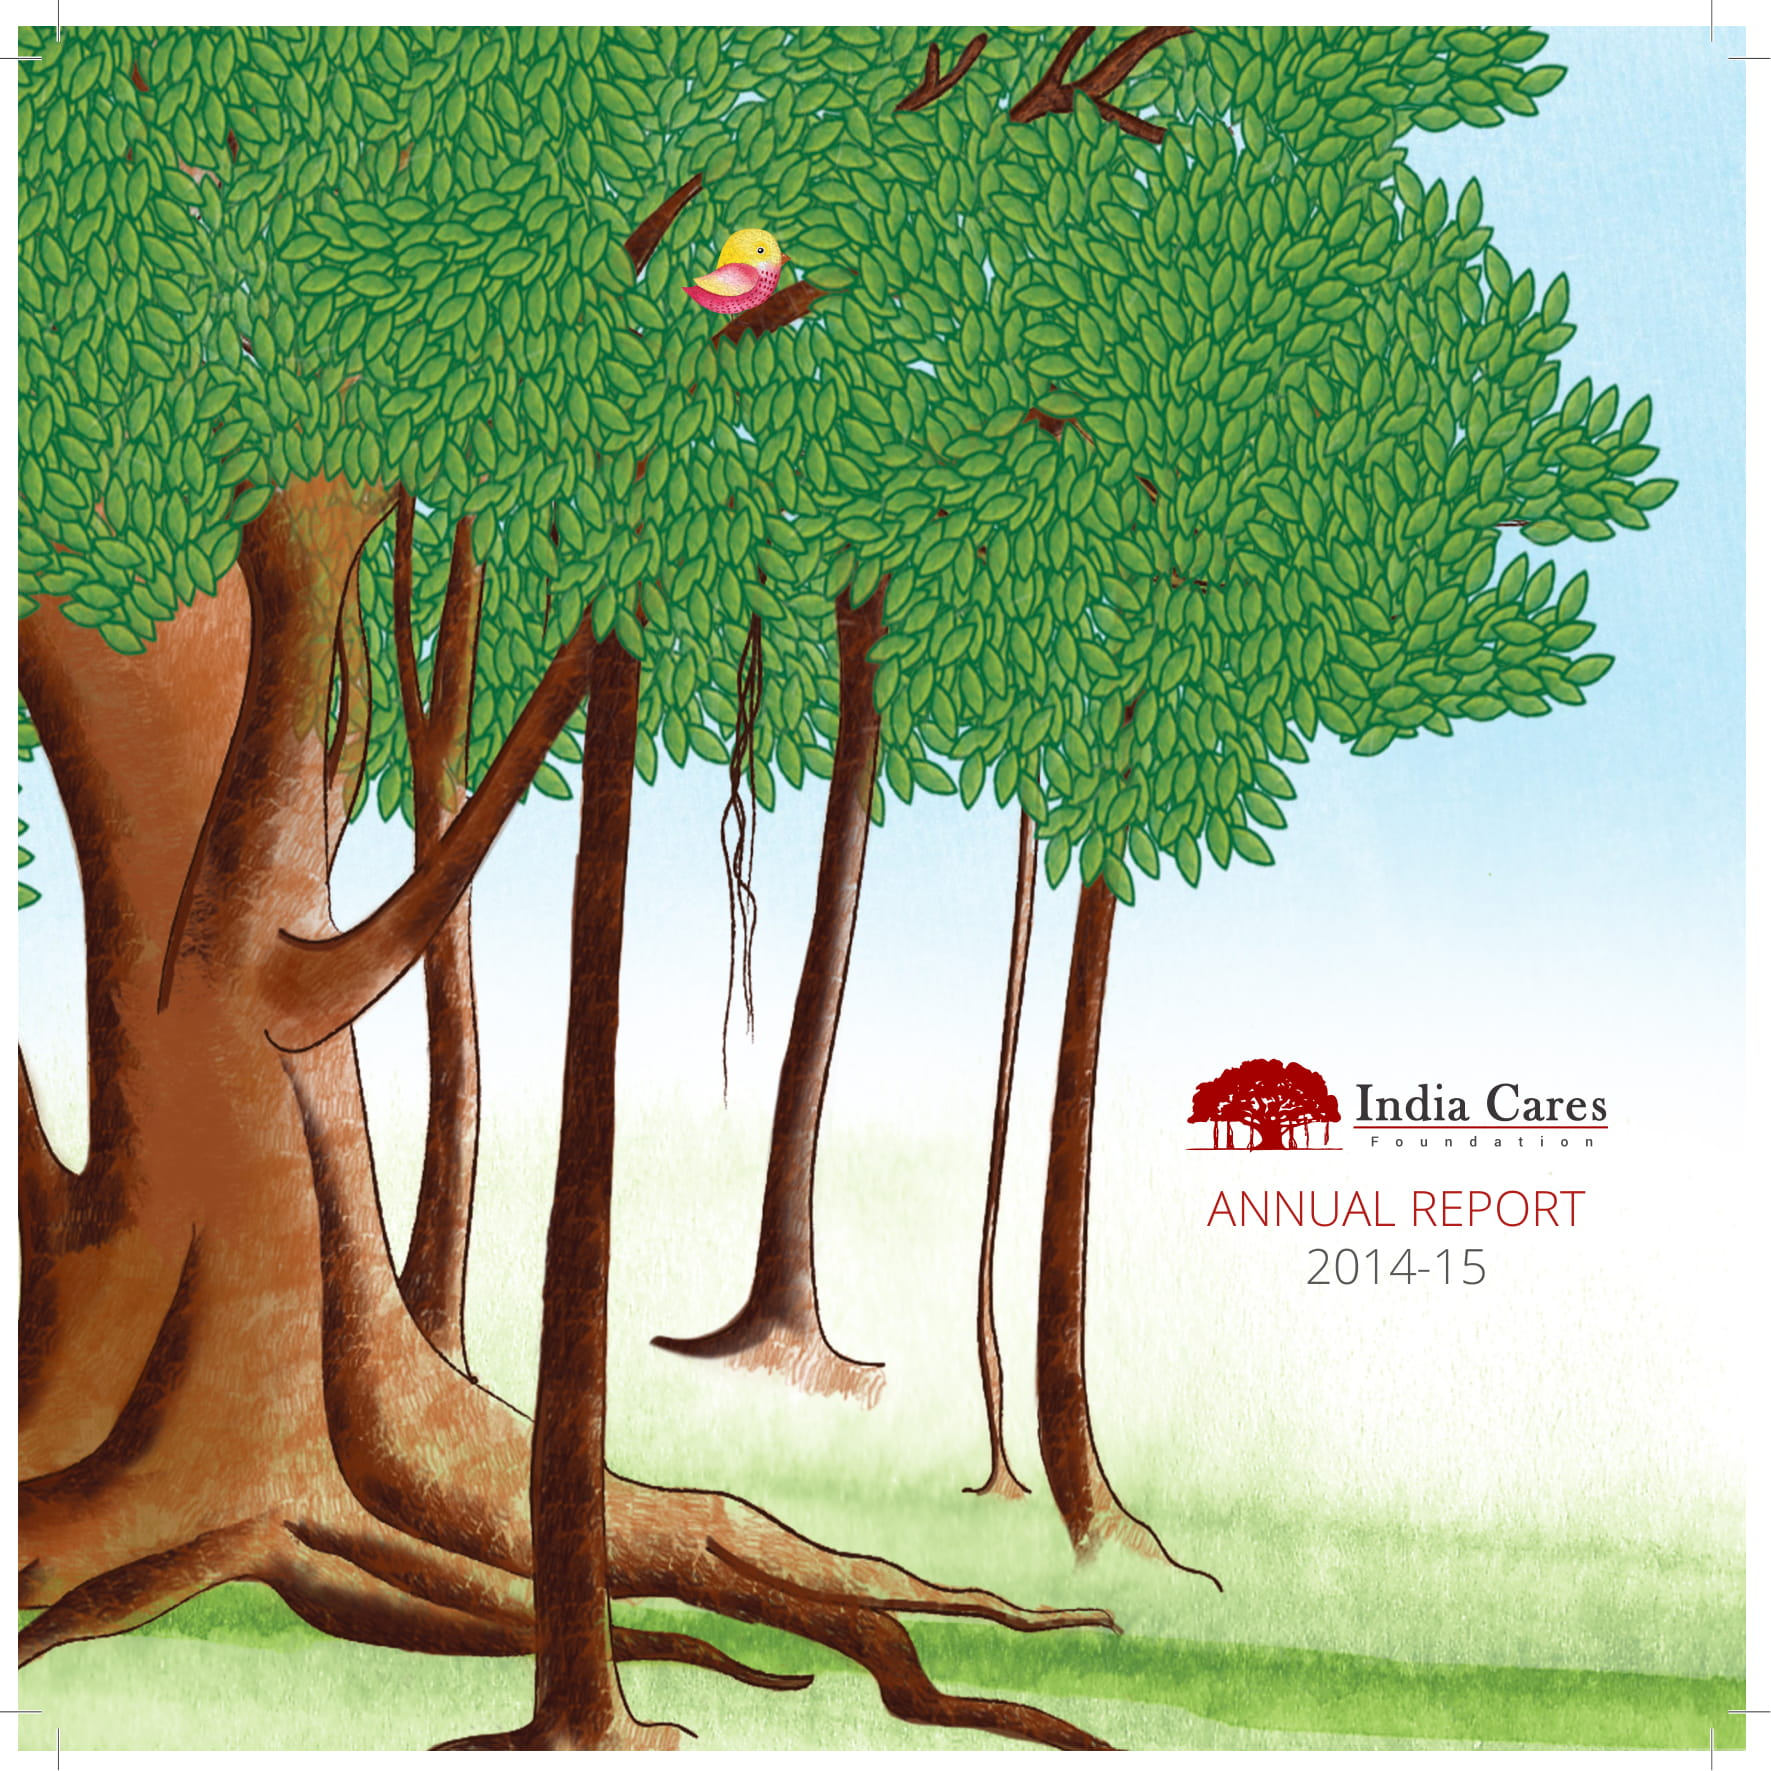 india cares ngo annual report example